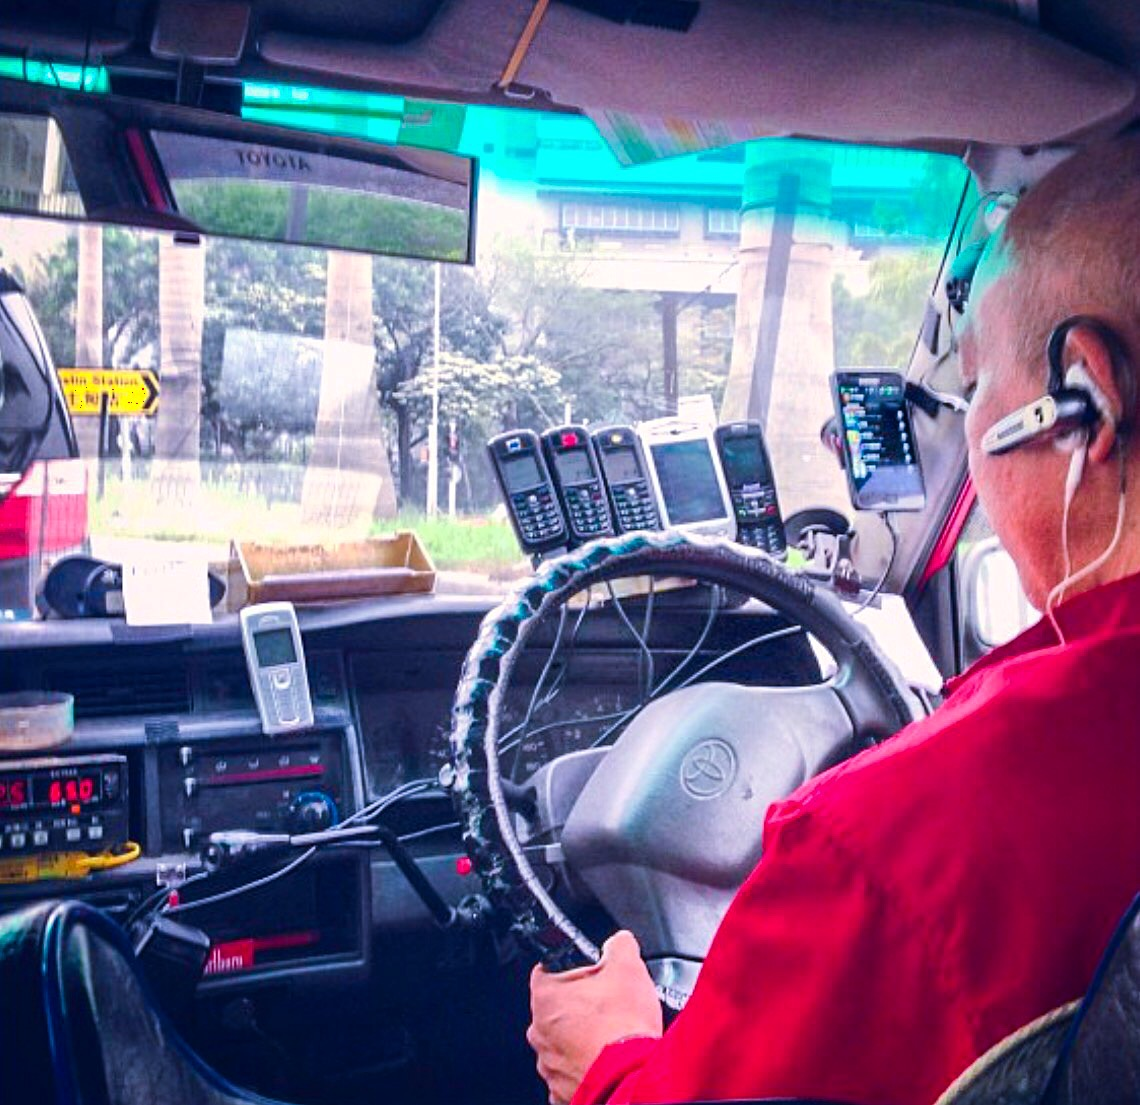 Hong Kong Taxi's are well connected